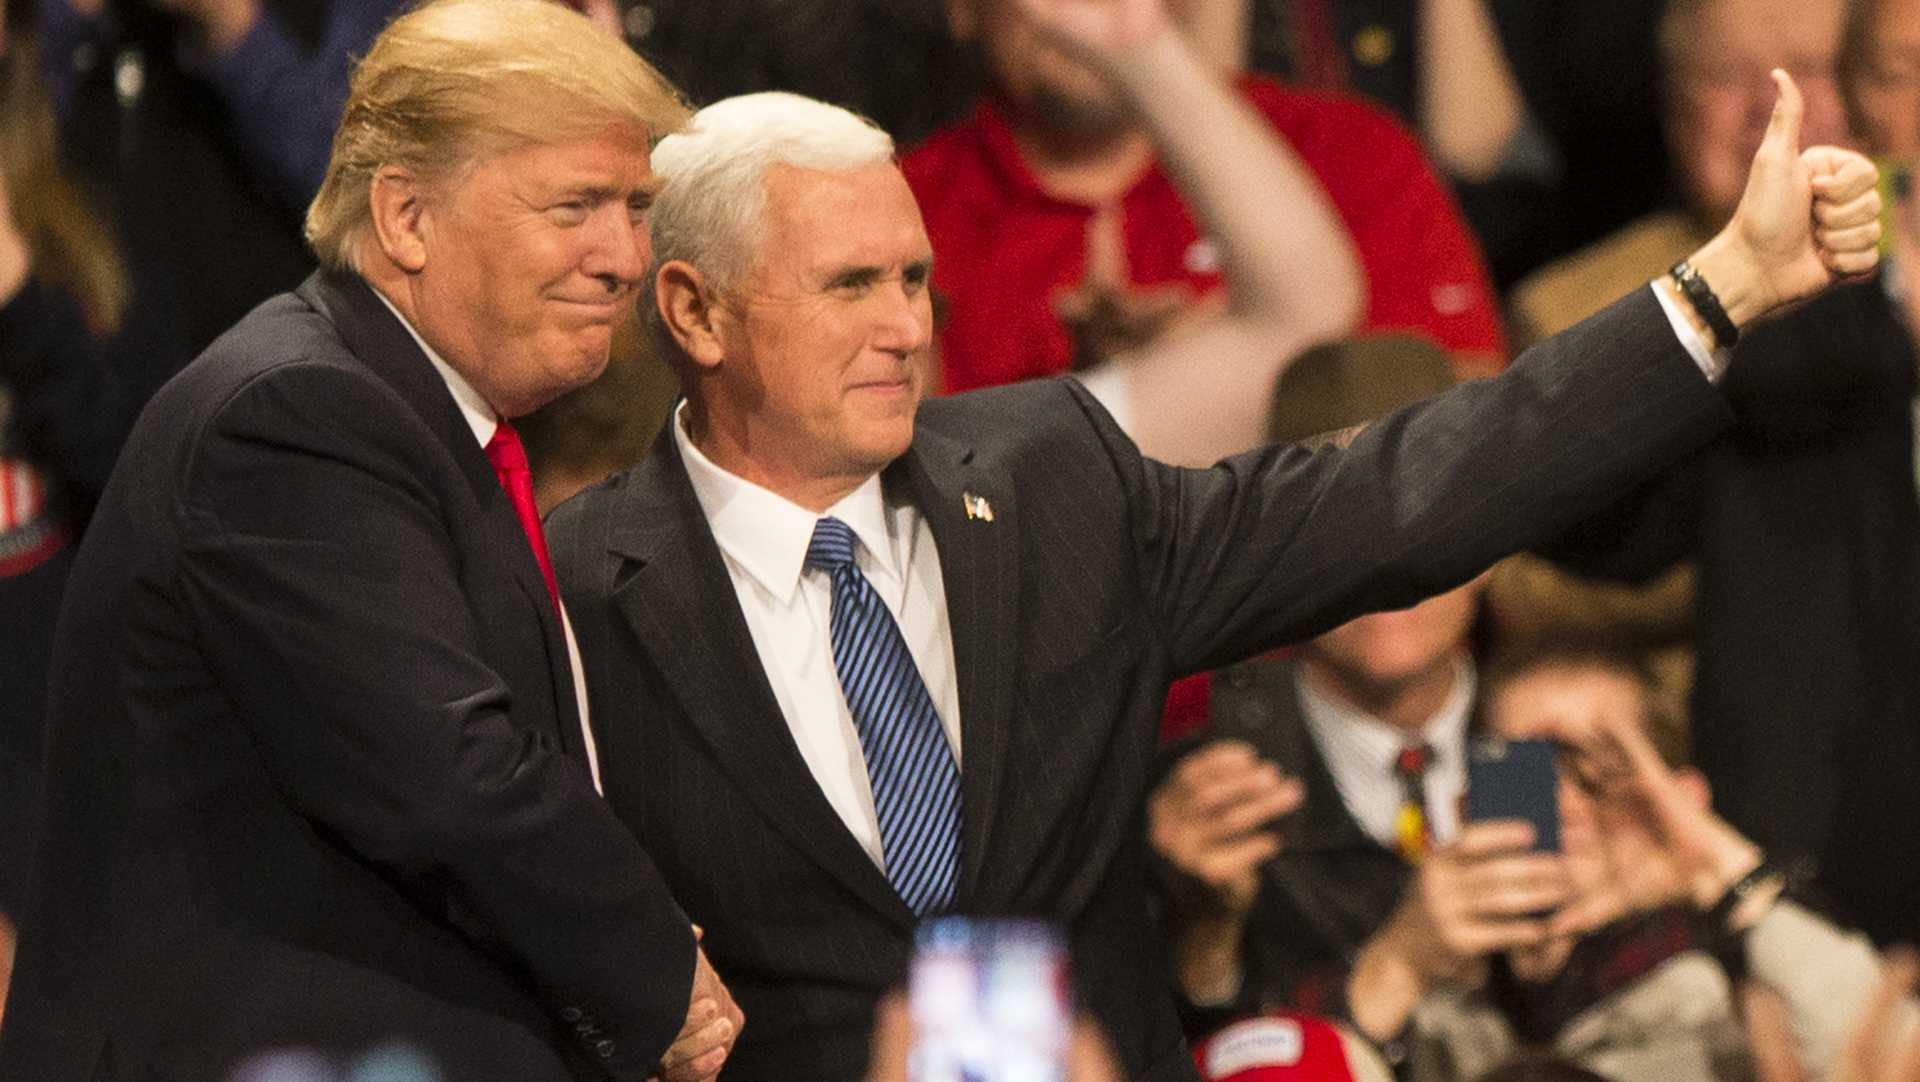 President-Elect Donald J. Trump and Vice President-Elect Mike Pence shake hands during an event in Des Moines on Thursday, Dec. 8, 2016. Trump and Pence are completing a Thank You tour across the country. (The Daily Iowan/Joseph Cress)